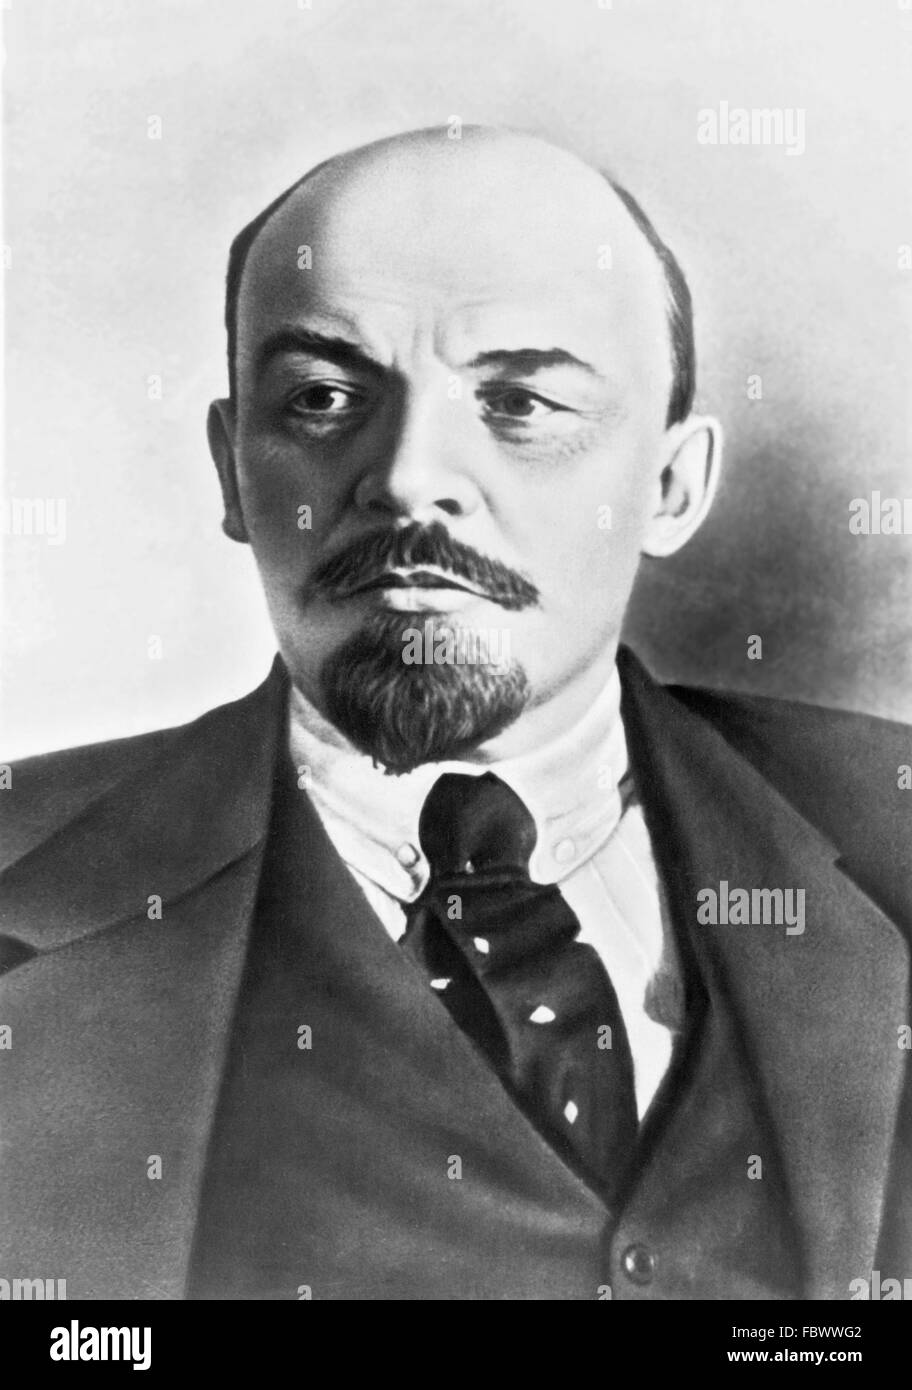 Vladimir Lenin (Vladimir Ilyich Ulyanov), Chairman of the Council of People's Commissars of the Russian SFSR - Stock Image